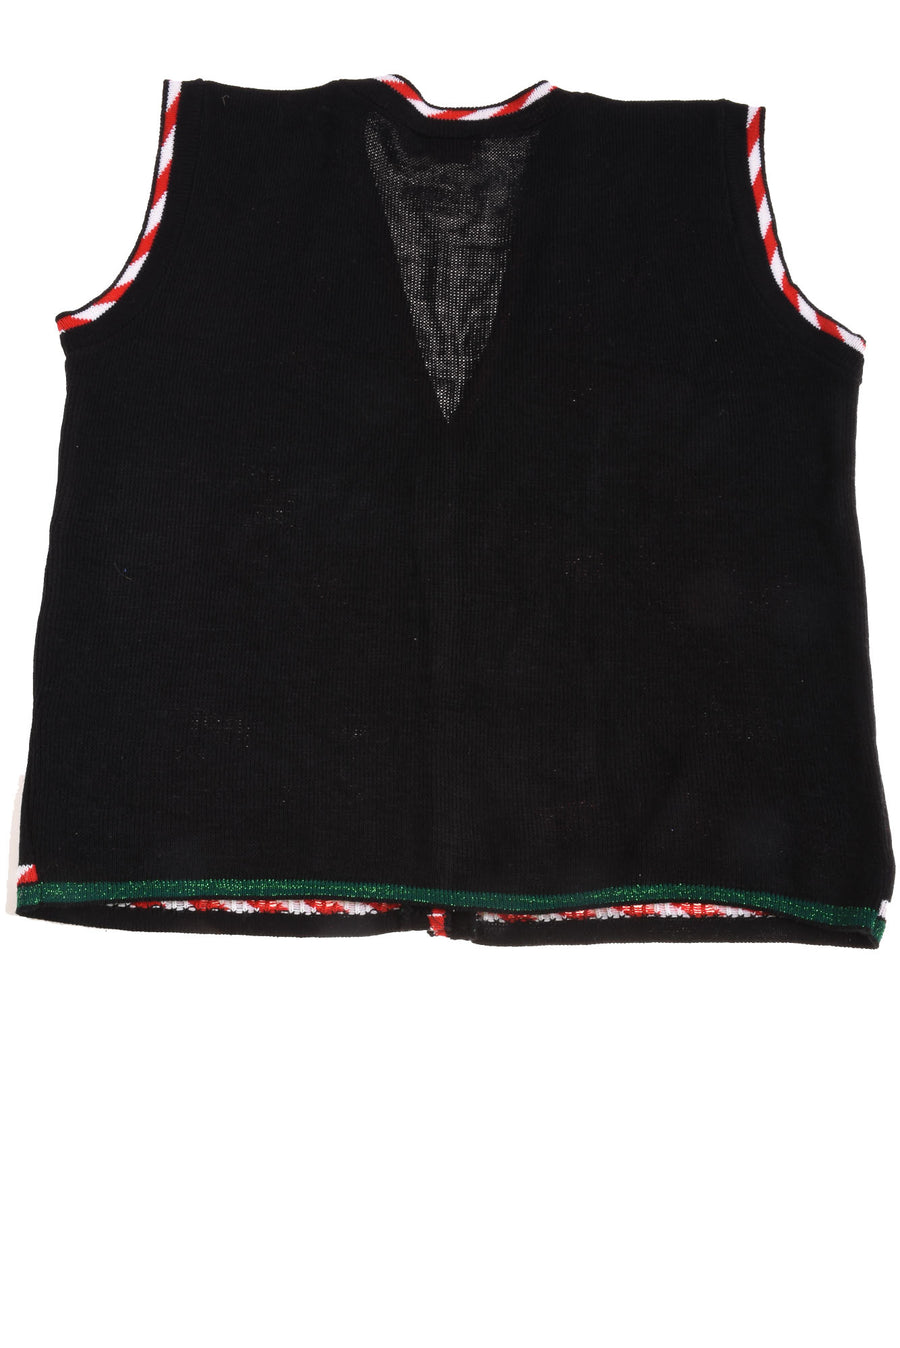 USED Snoopy & Friends Women's Plus Vest 18W Black, Red, & White